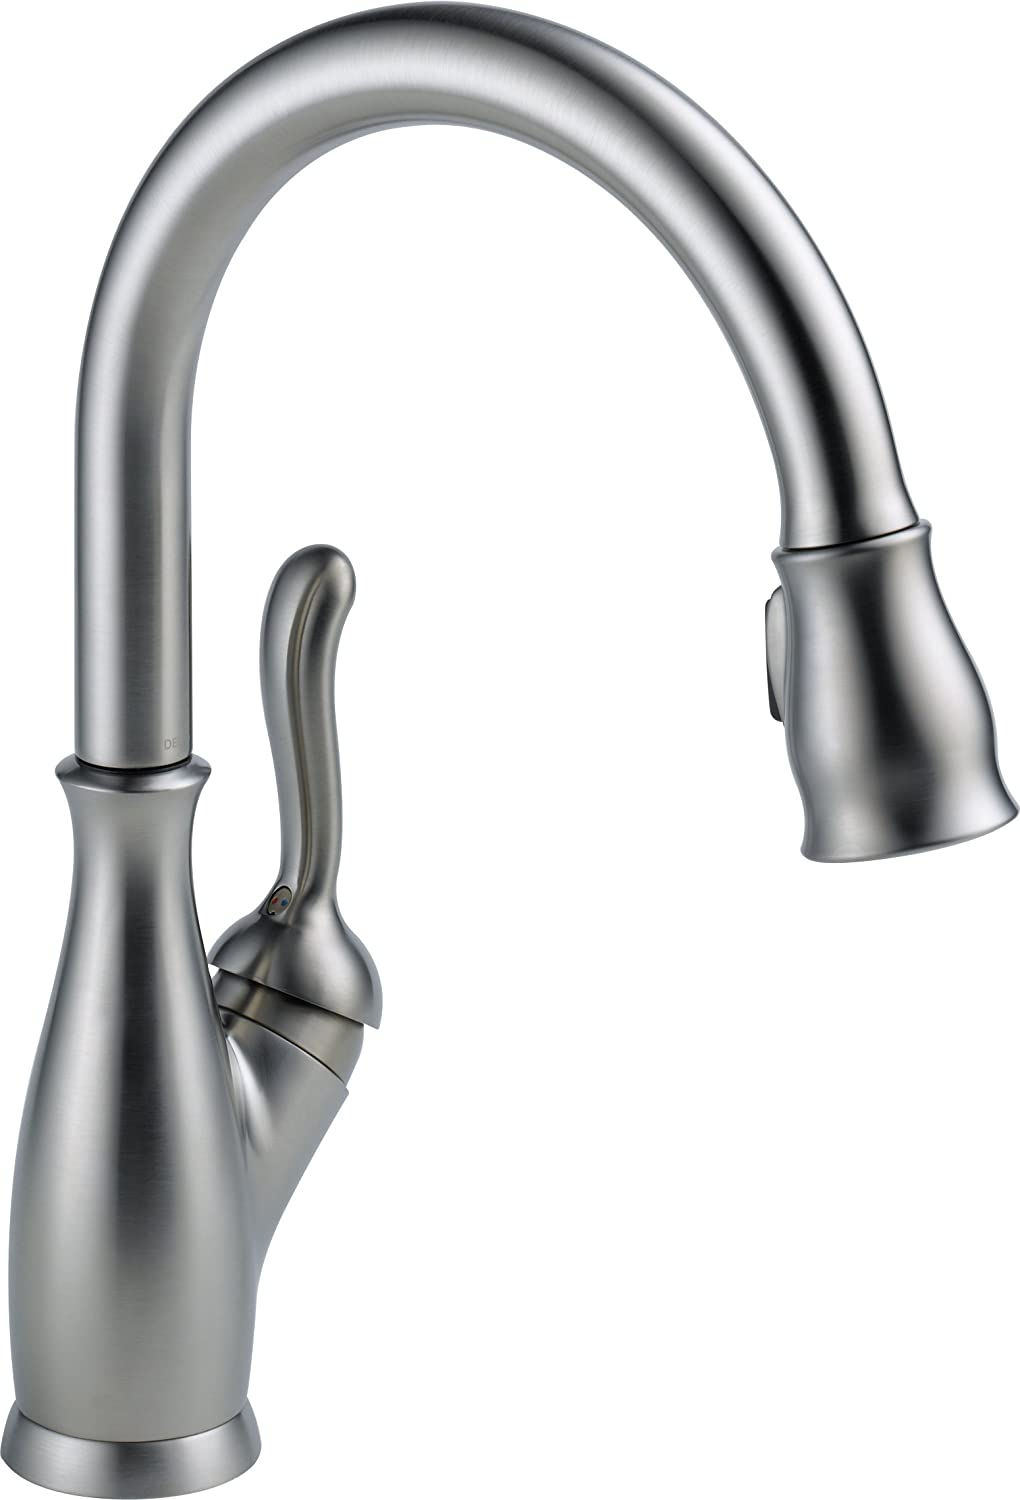 Delta Faucet 9178 AR DST Leland Single Handle Pull Down Kitchen Faucet With  Magnetic Docking, Arctic Stainless   Touch On Kitchen Sink Faucets    Amazon.com